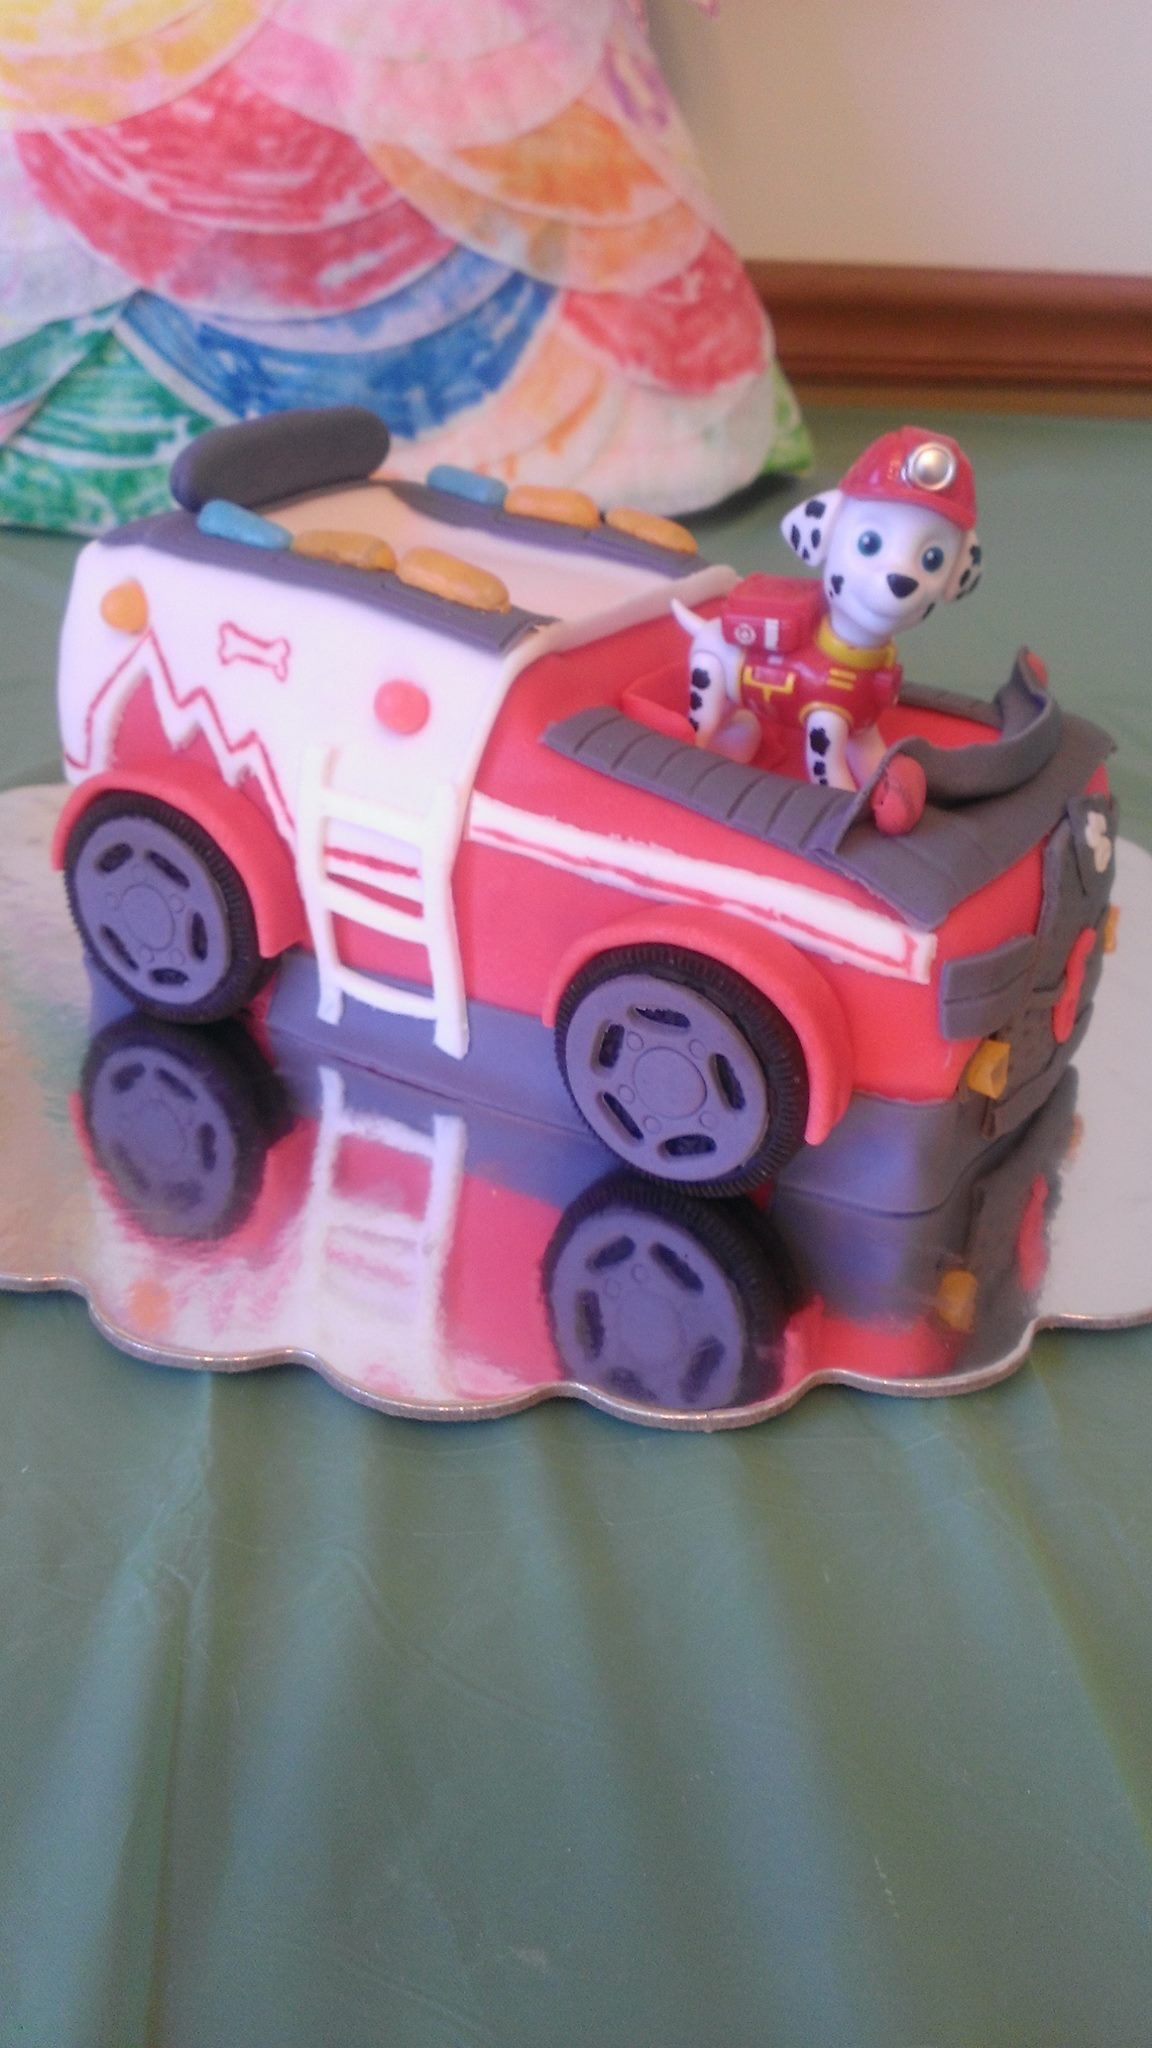 Paw Patrol Marshall Fire Truck 3d Sculpted Cake I Made For Boy Birthday Firetruck Cake Paw Patrol Cake 2 Birthday Cake